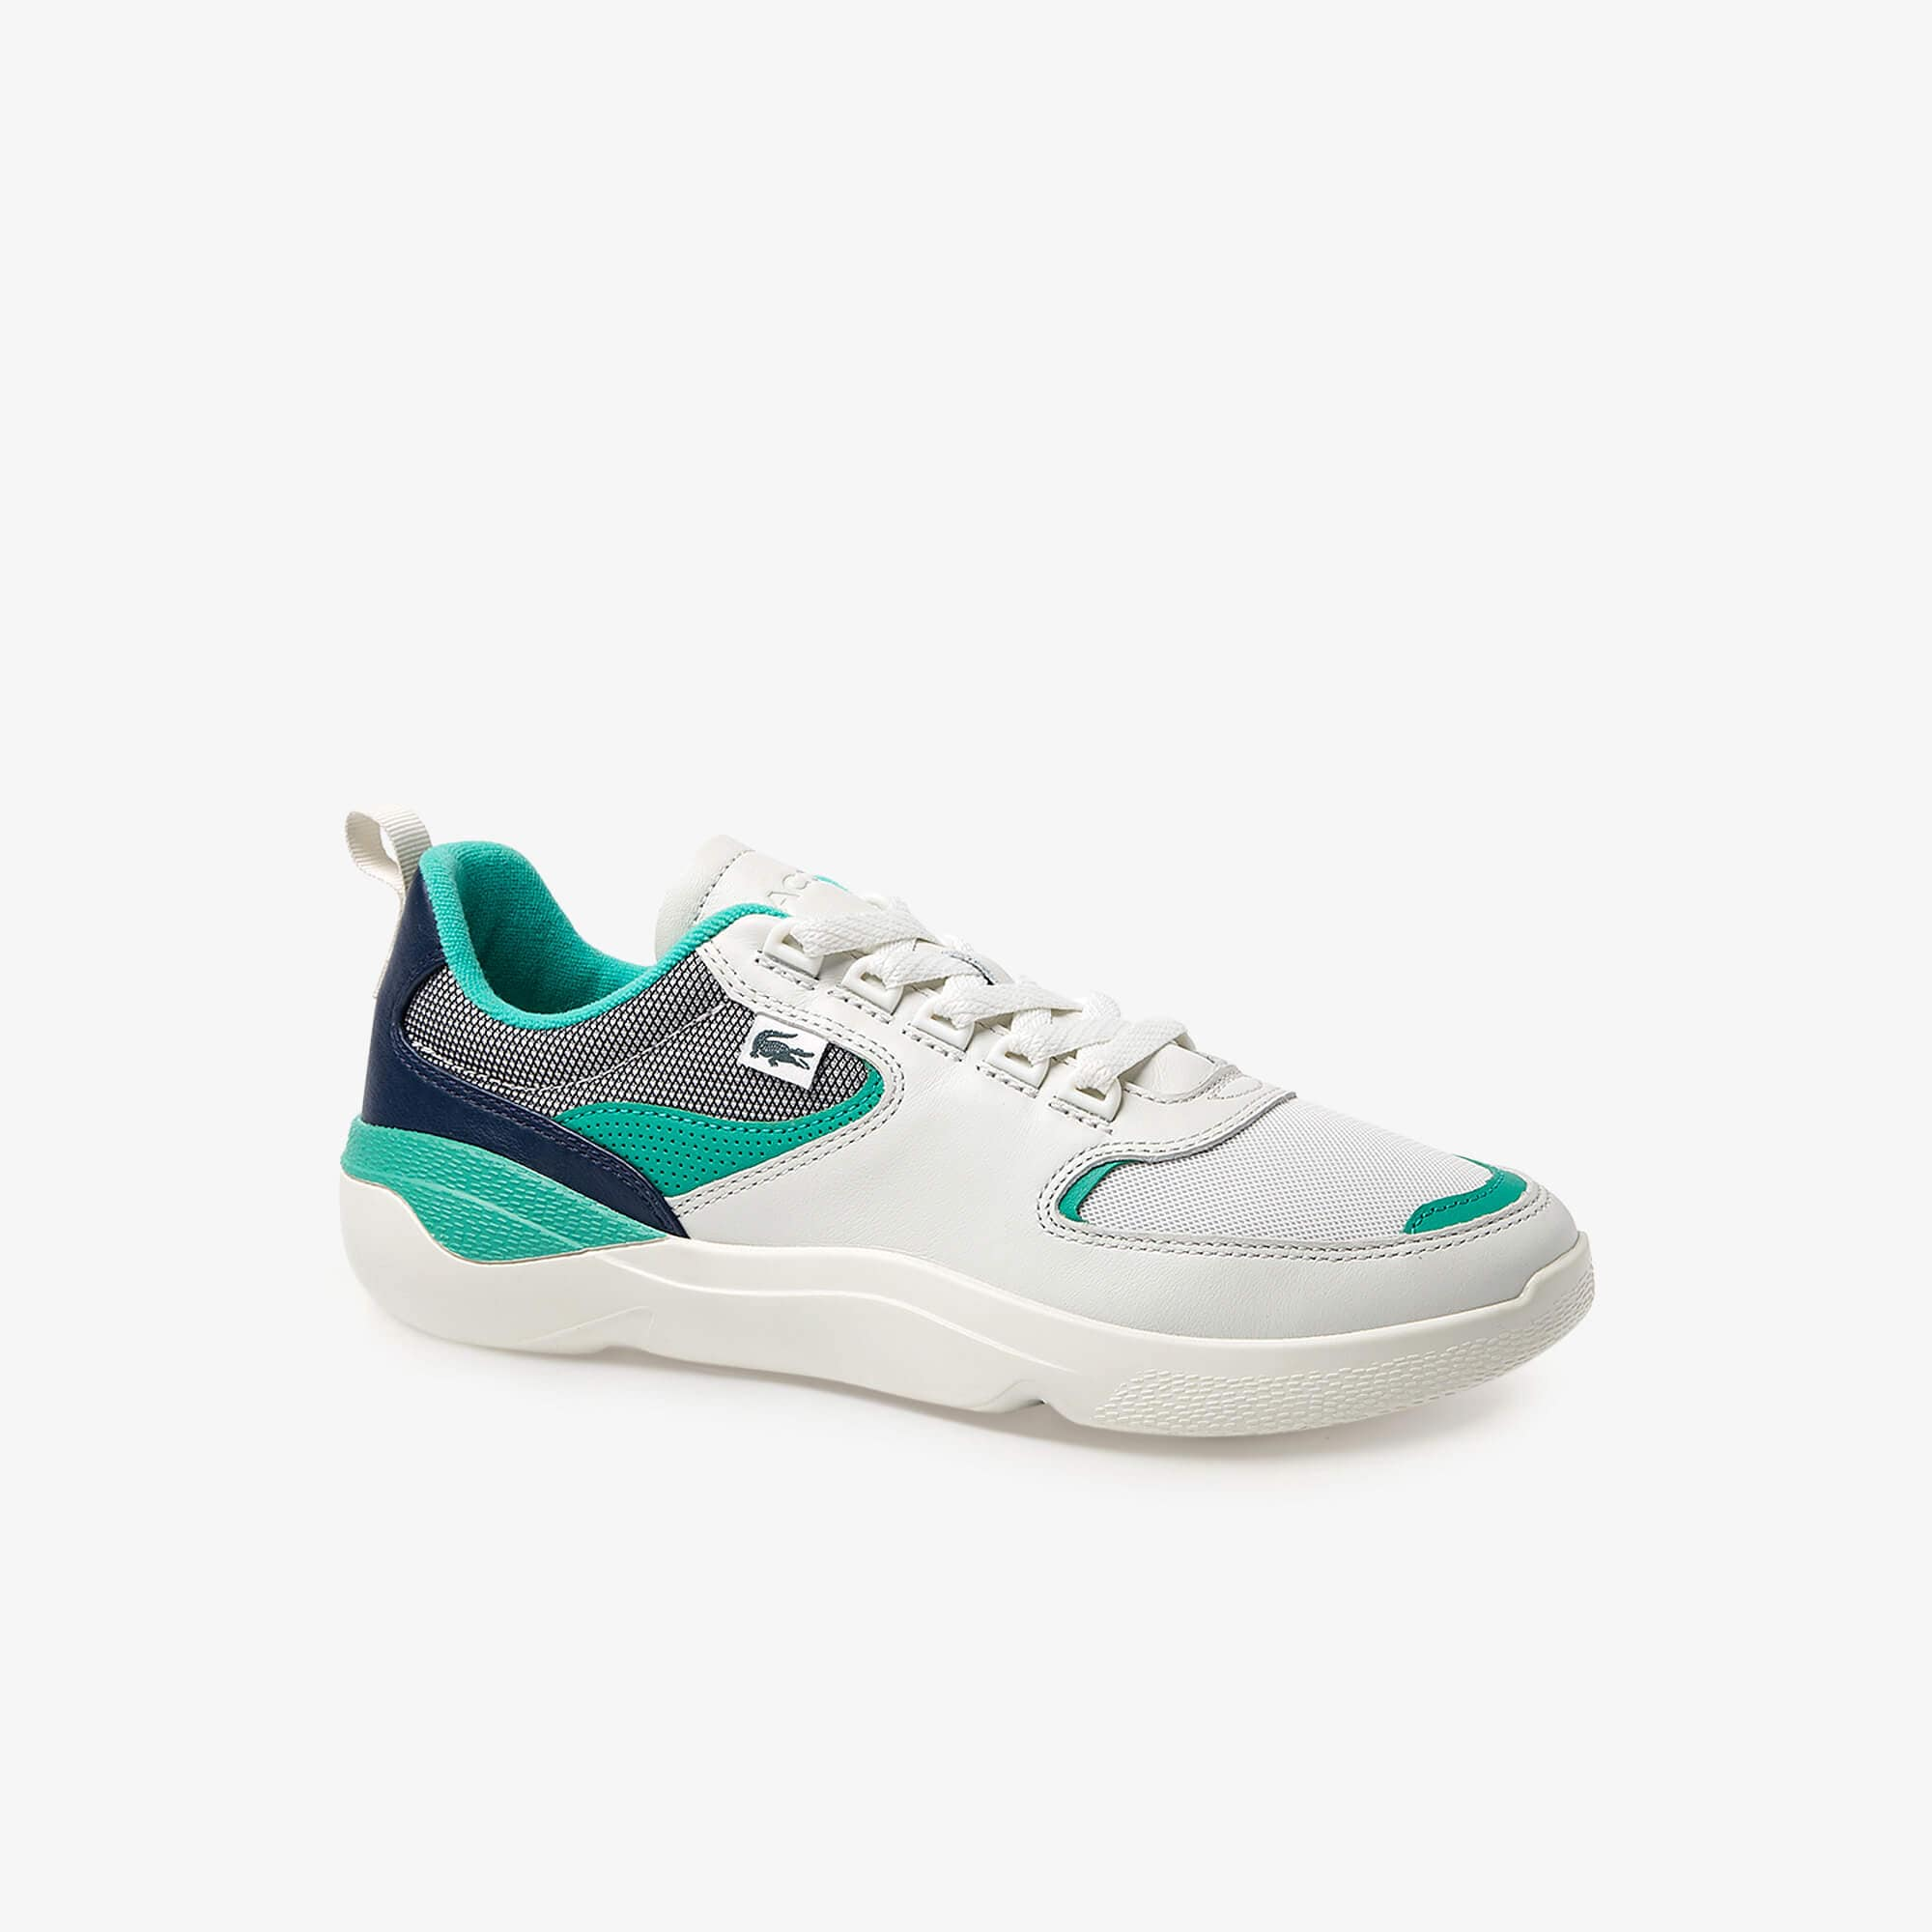 Men's Wildcard Leather and Textile Sneakers